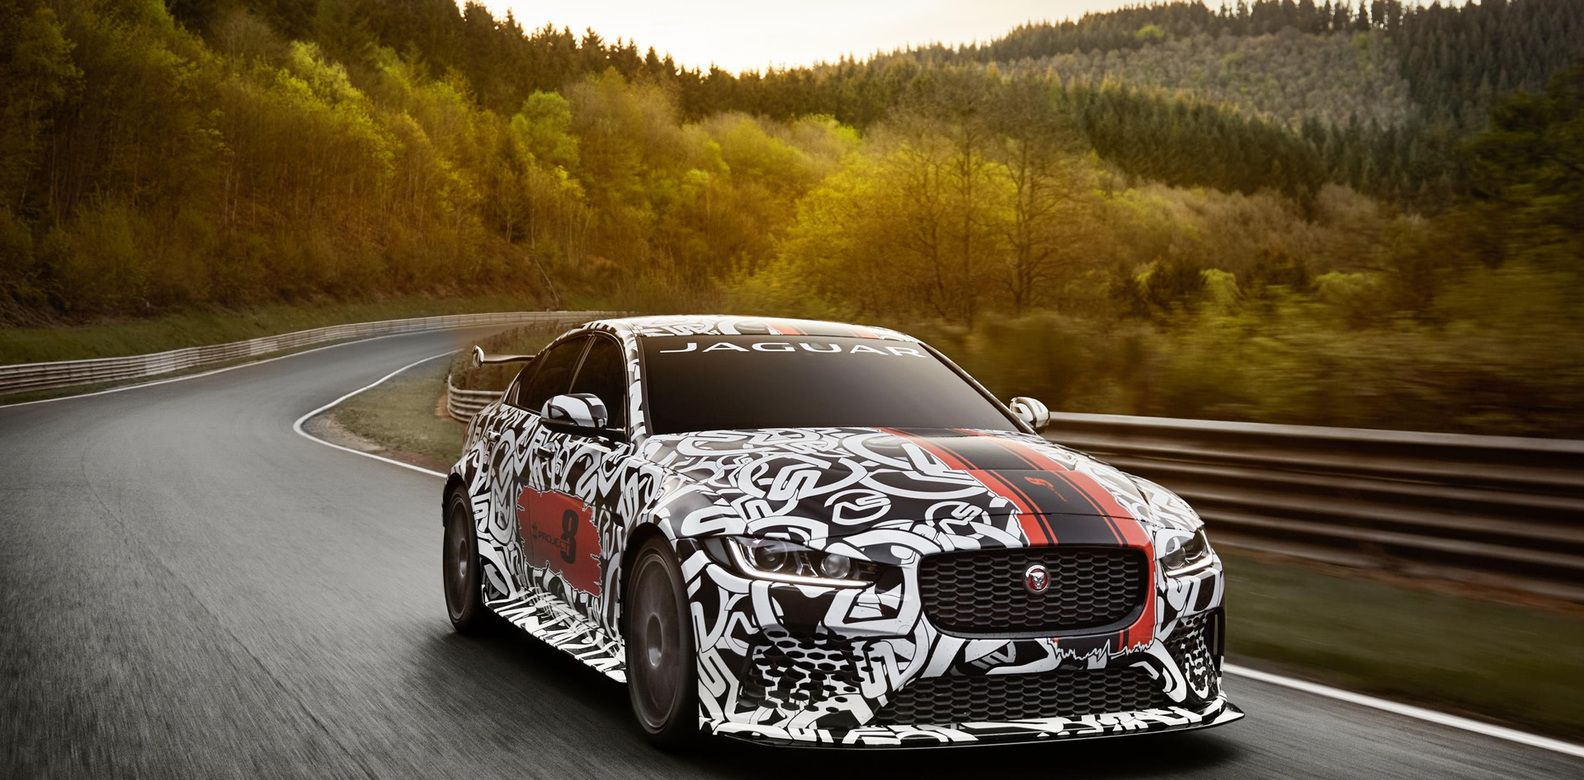 The XE SV Project 8 Is The Most Extreme Performance Jaguar Ever